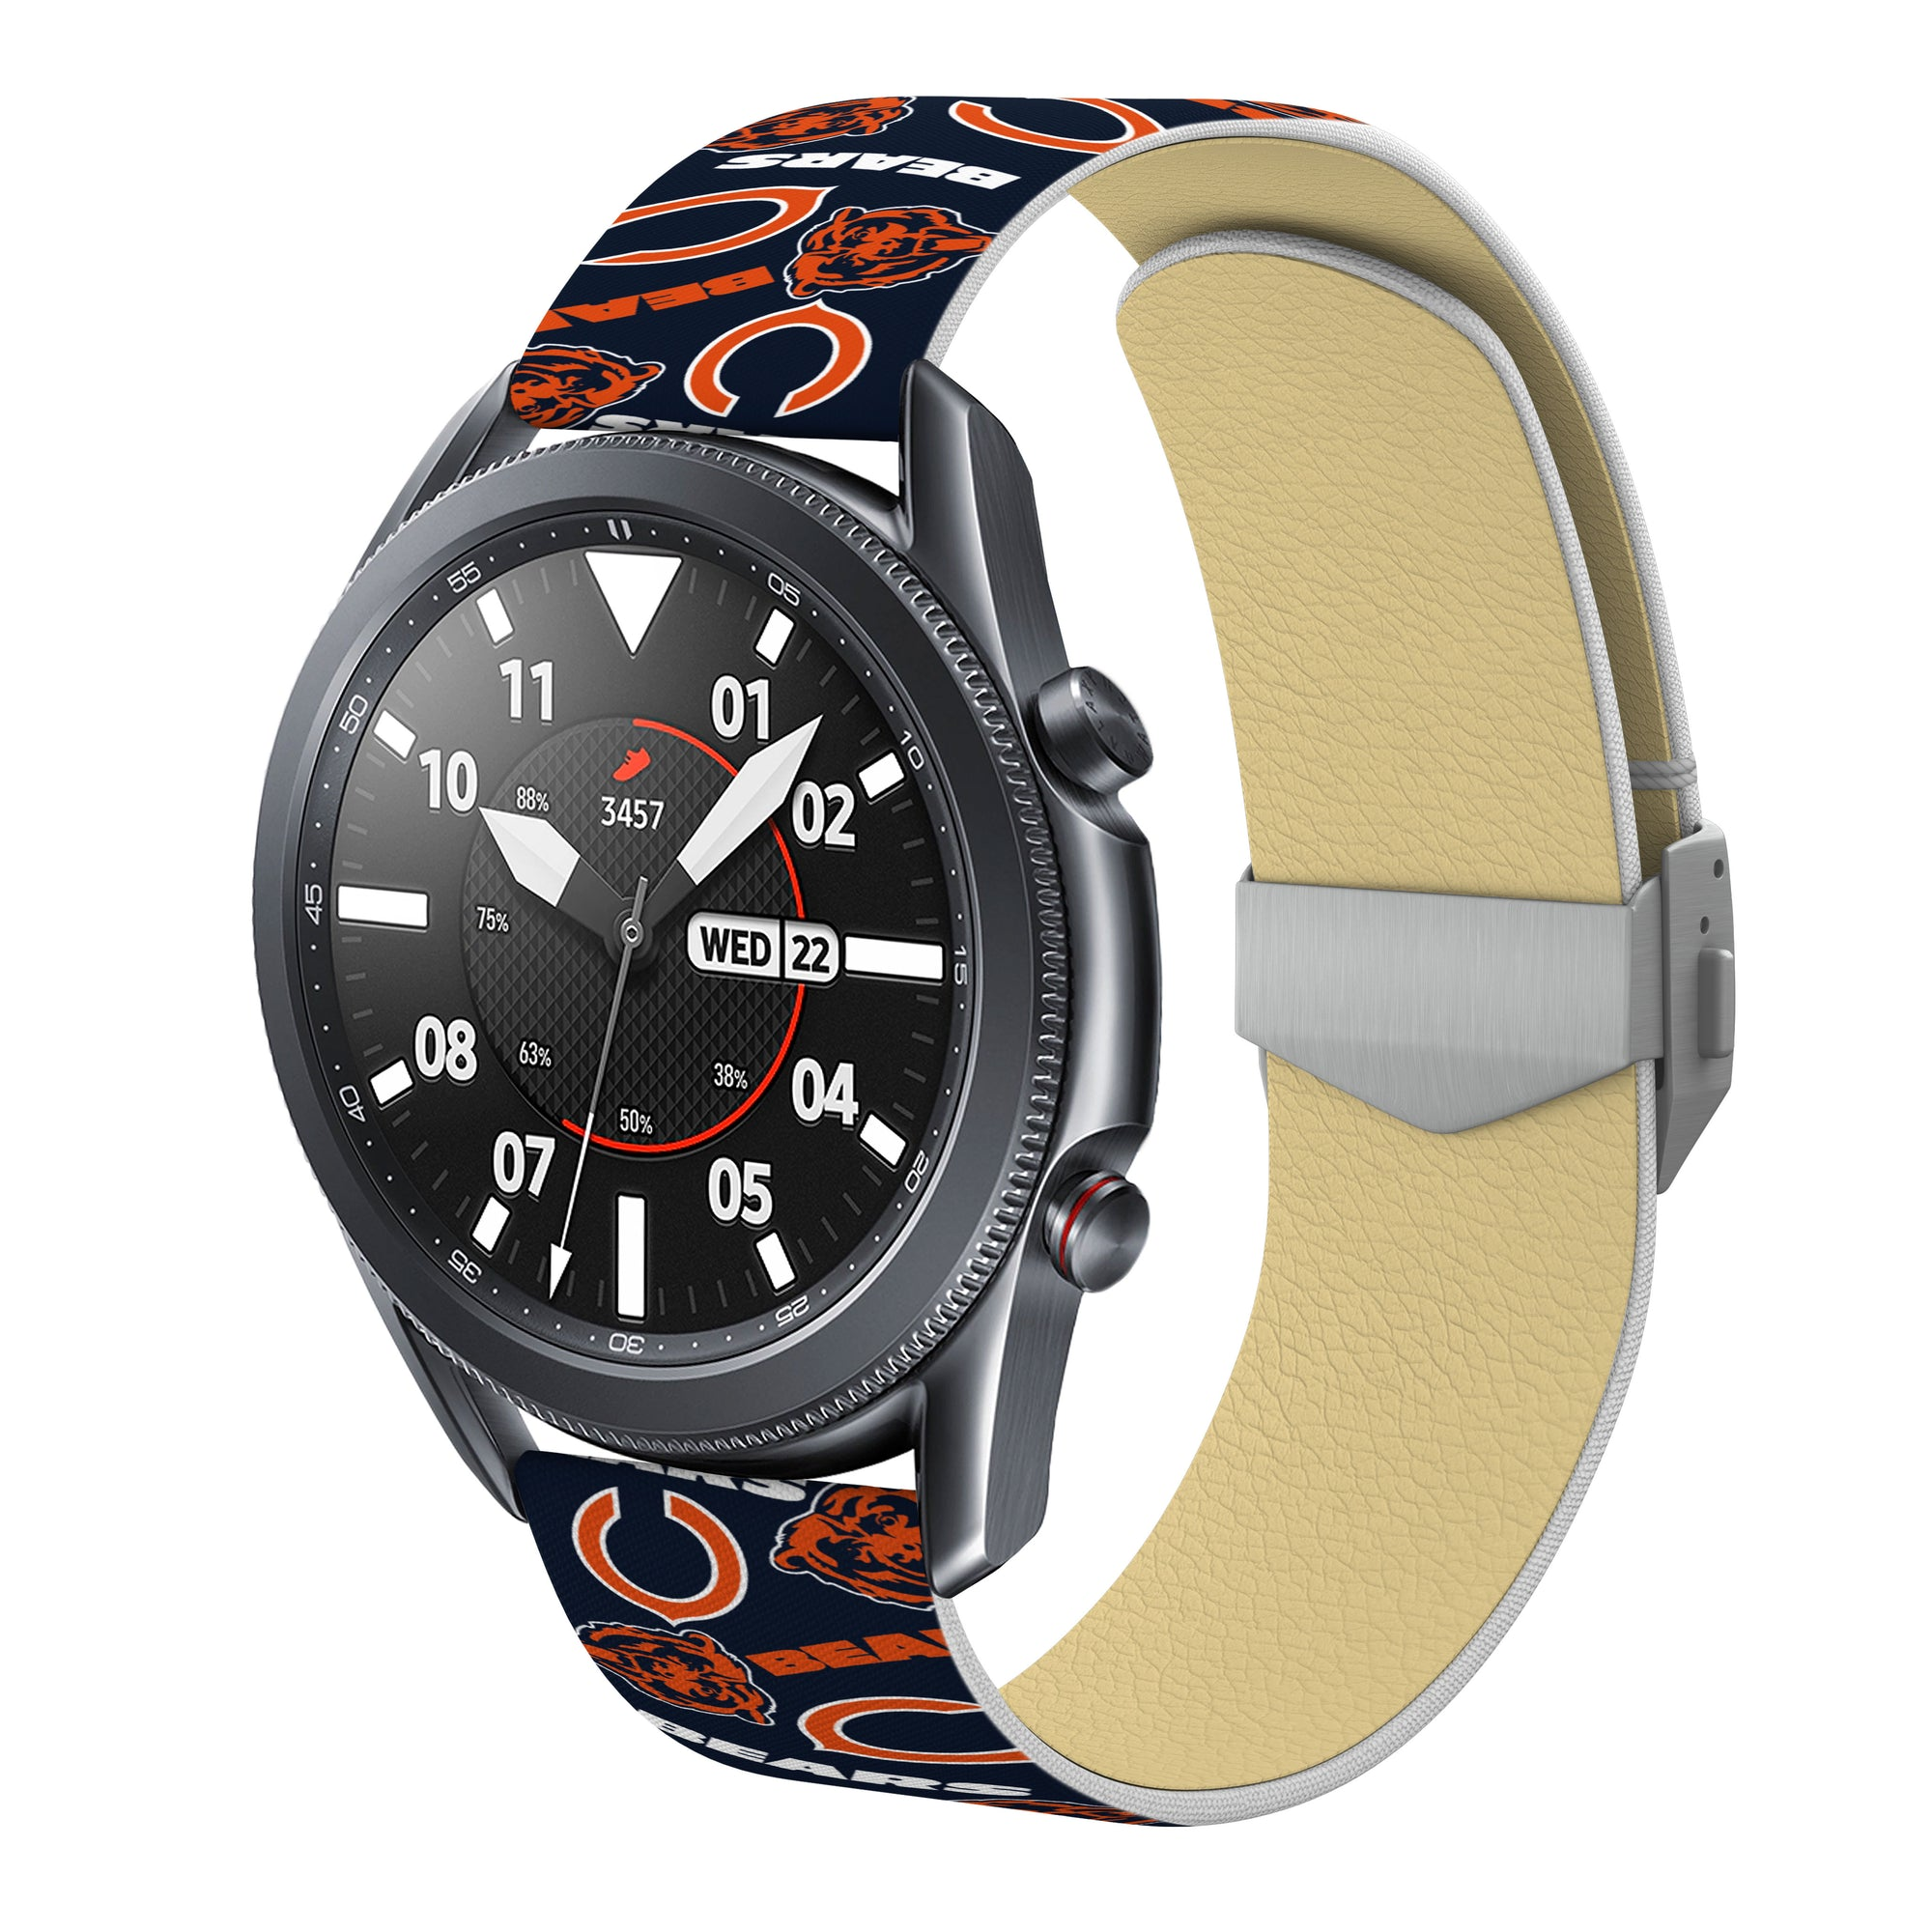 Chicago Bears Full Print Quick Change Watch Band With Engraved Buckle - AffinityBands